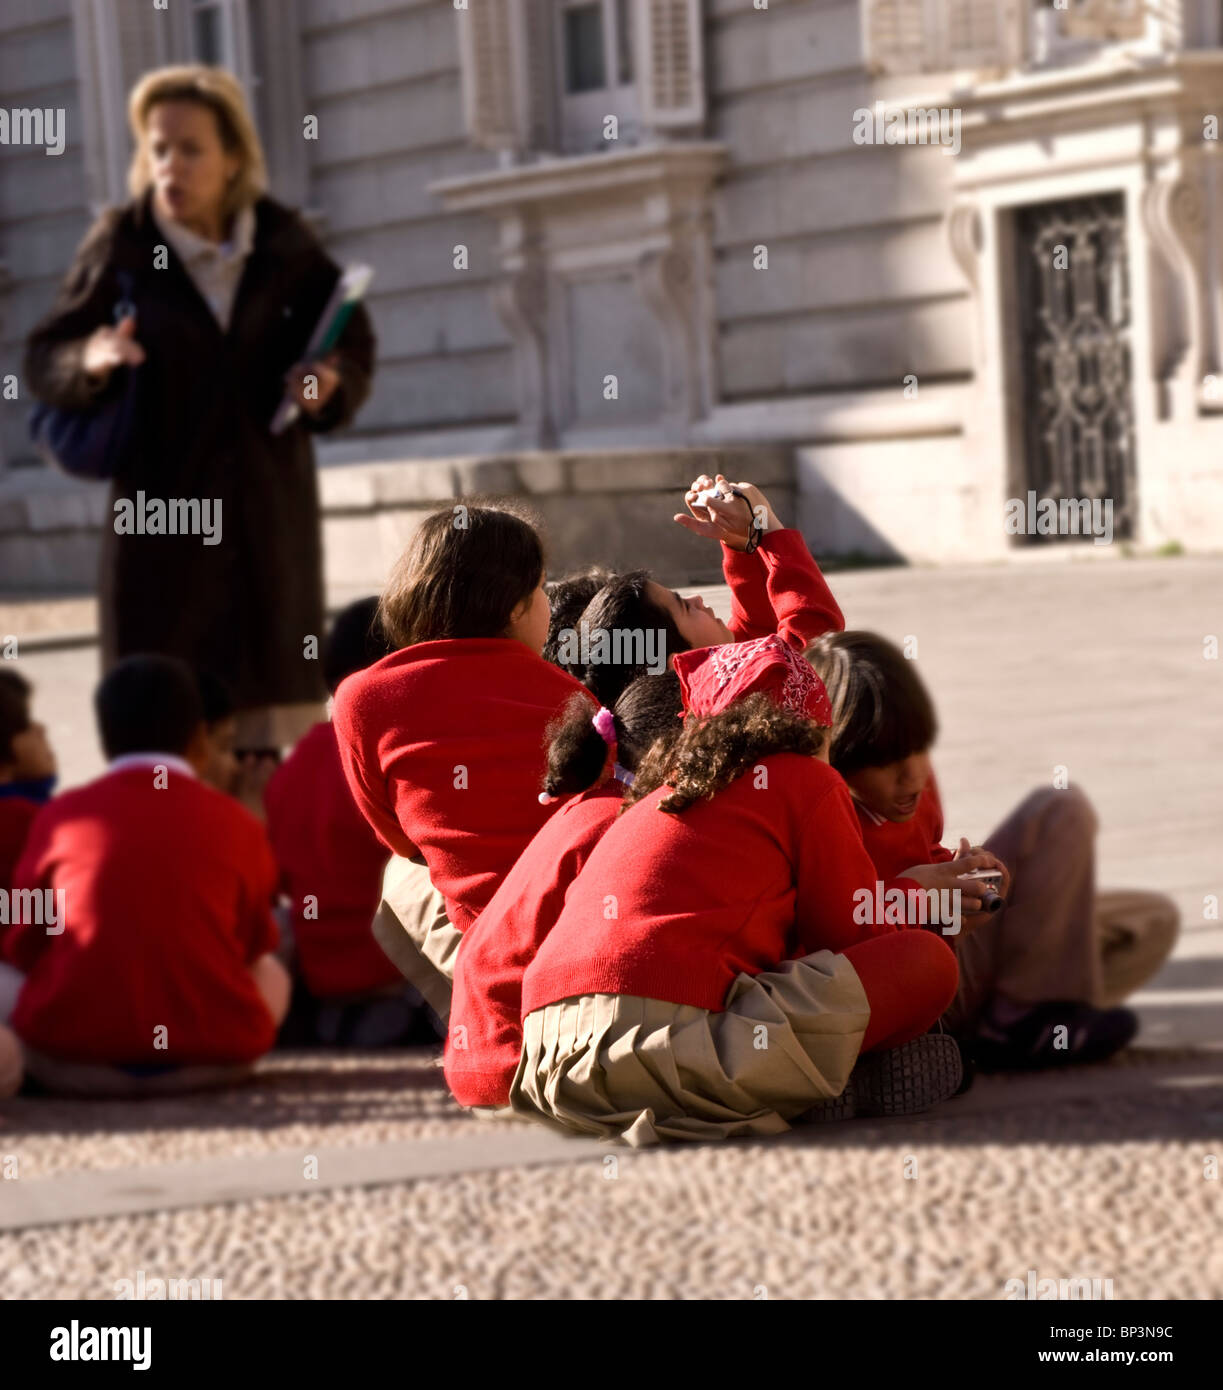 Schoolchildren and teacher visit The Royal Palace in Madrid, Spain during an educational school outing. - Stock Image